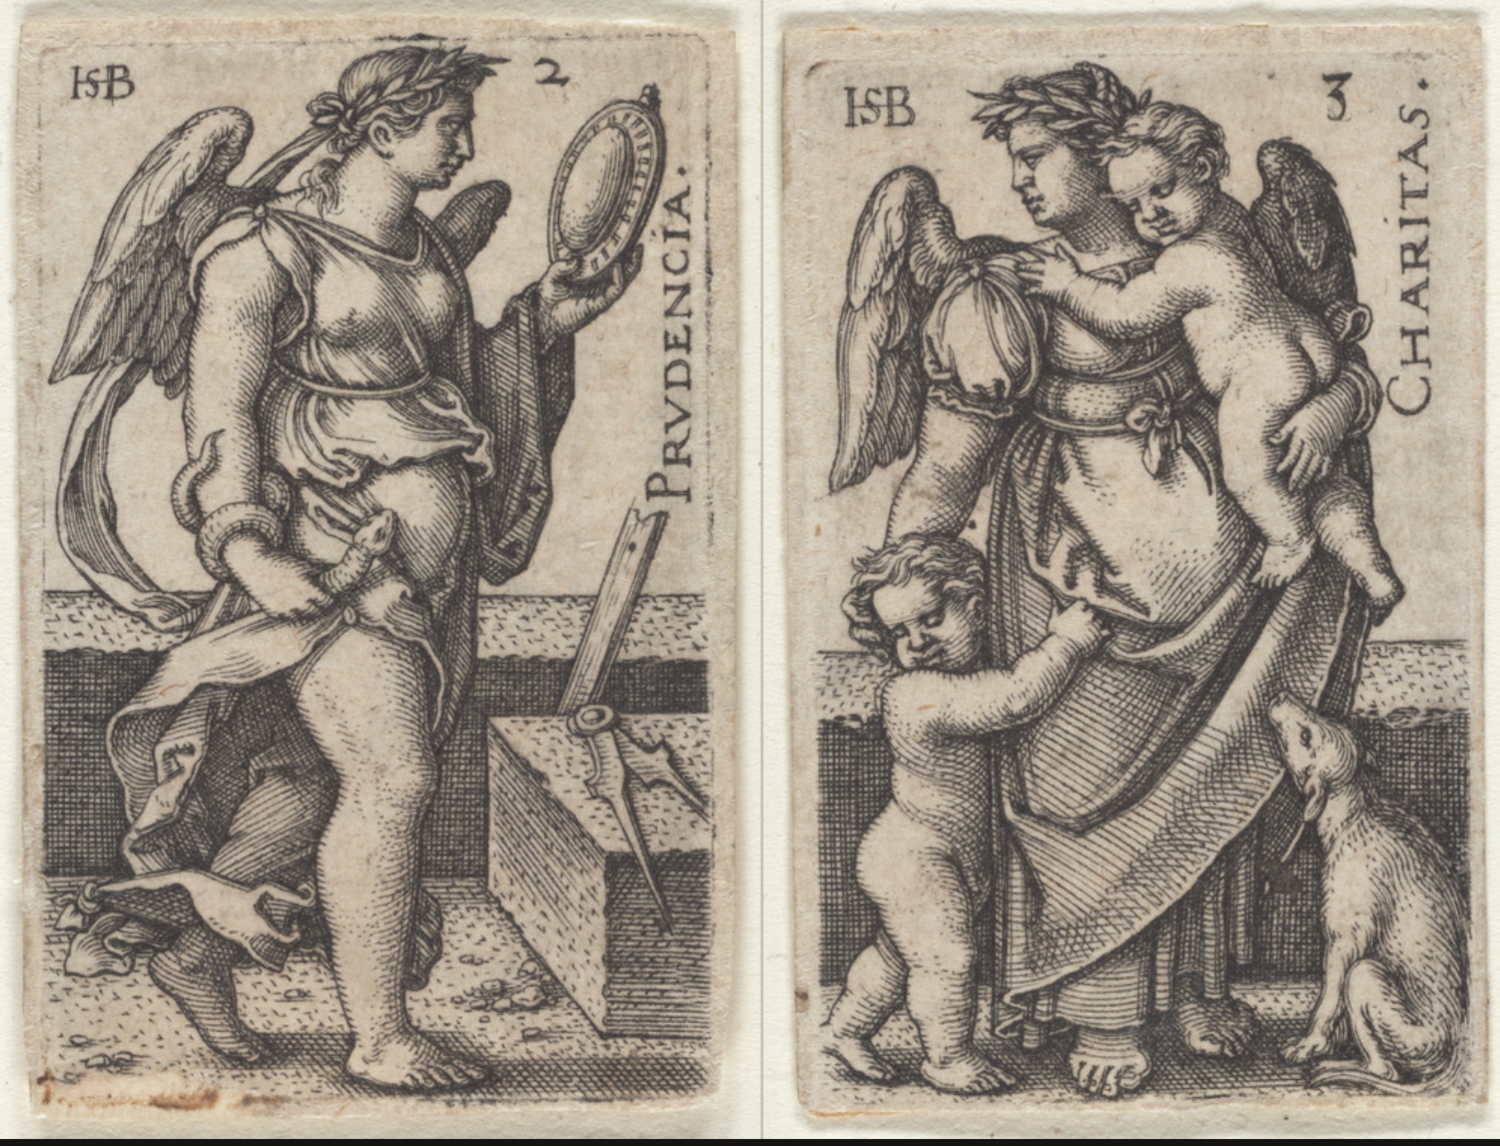 The Miriam and Ira D. Wallach Division of Art, Prints and Photographs: Print Collection, The New York Public Library. (1500 - 1550).  Prudence  Retrieved from http://digitalcollections.nypl.org/items/fdf53b40-63d4-0133-7314-00505686d14e